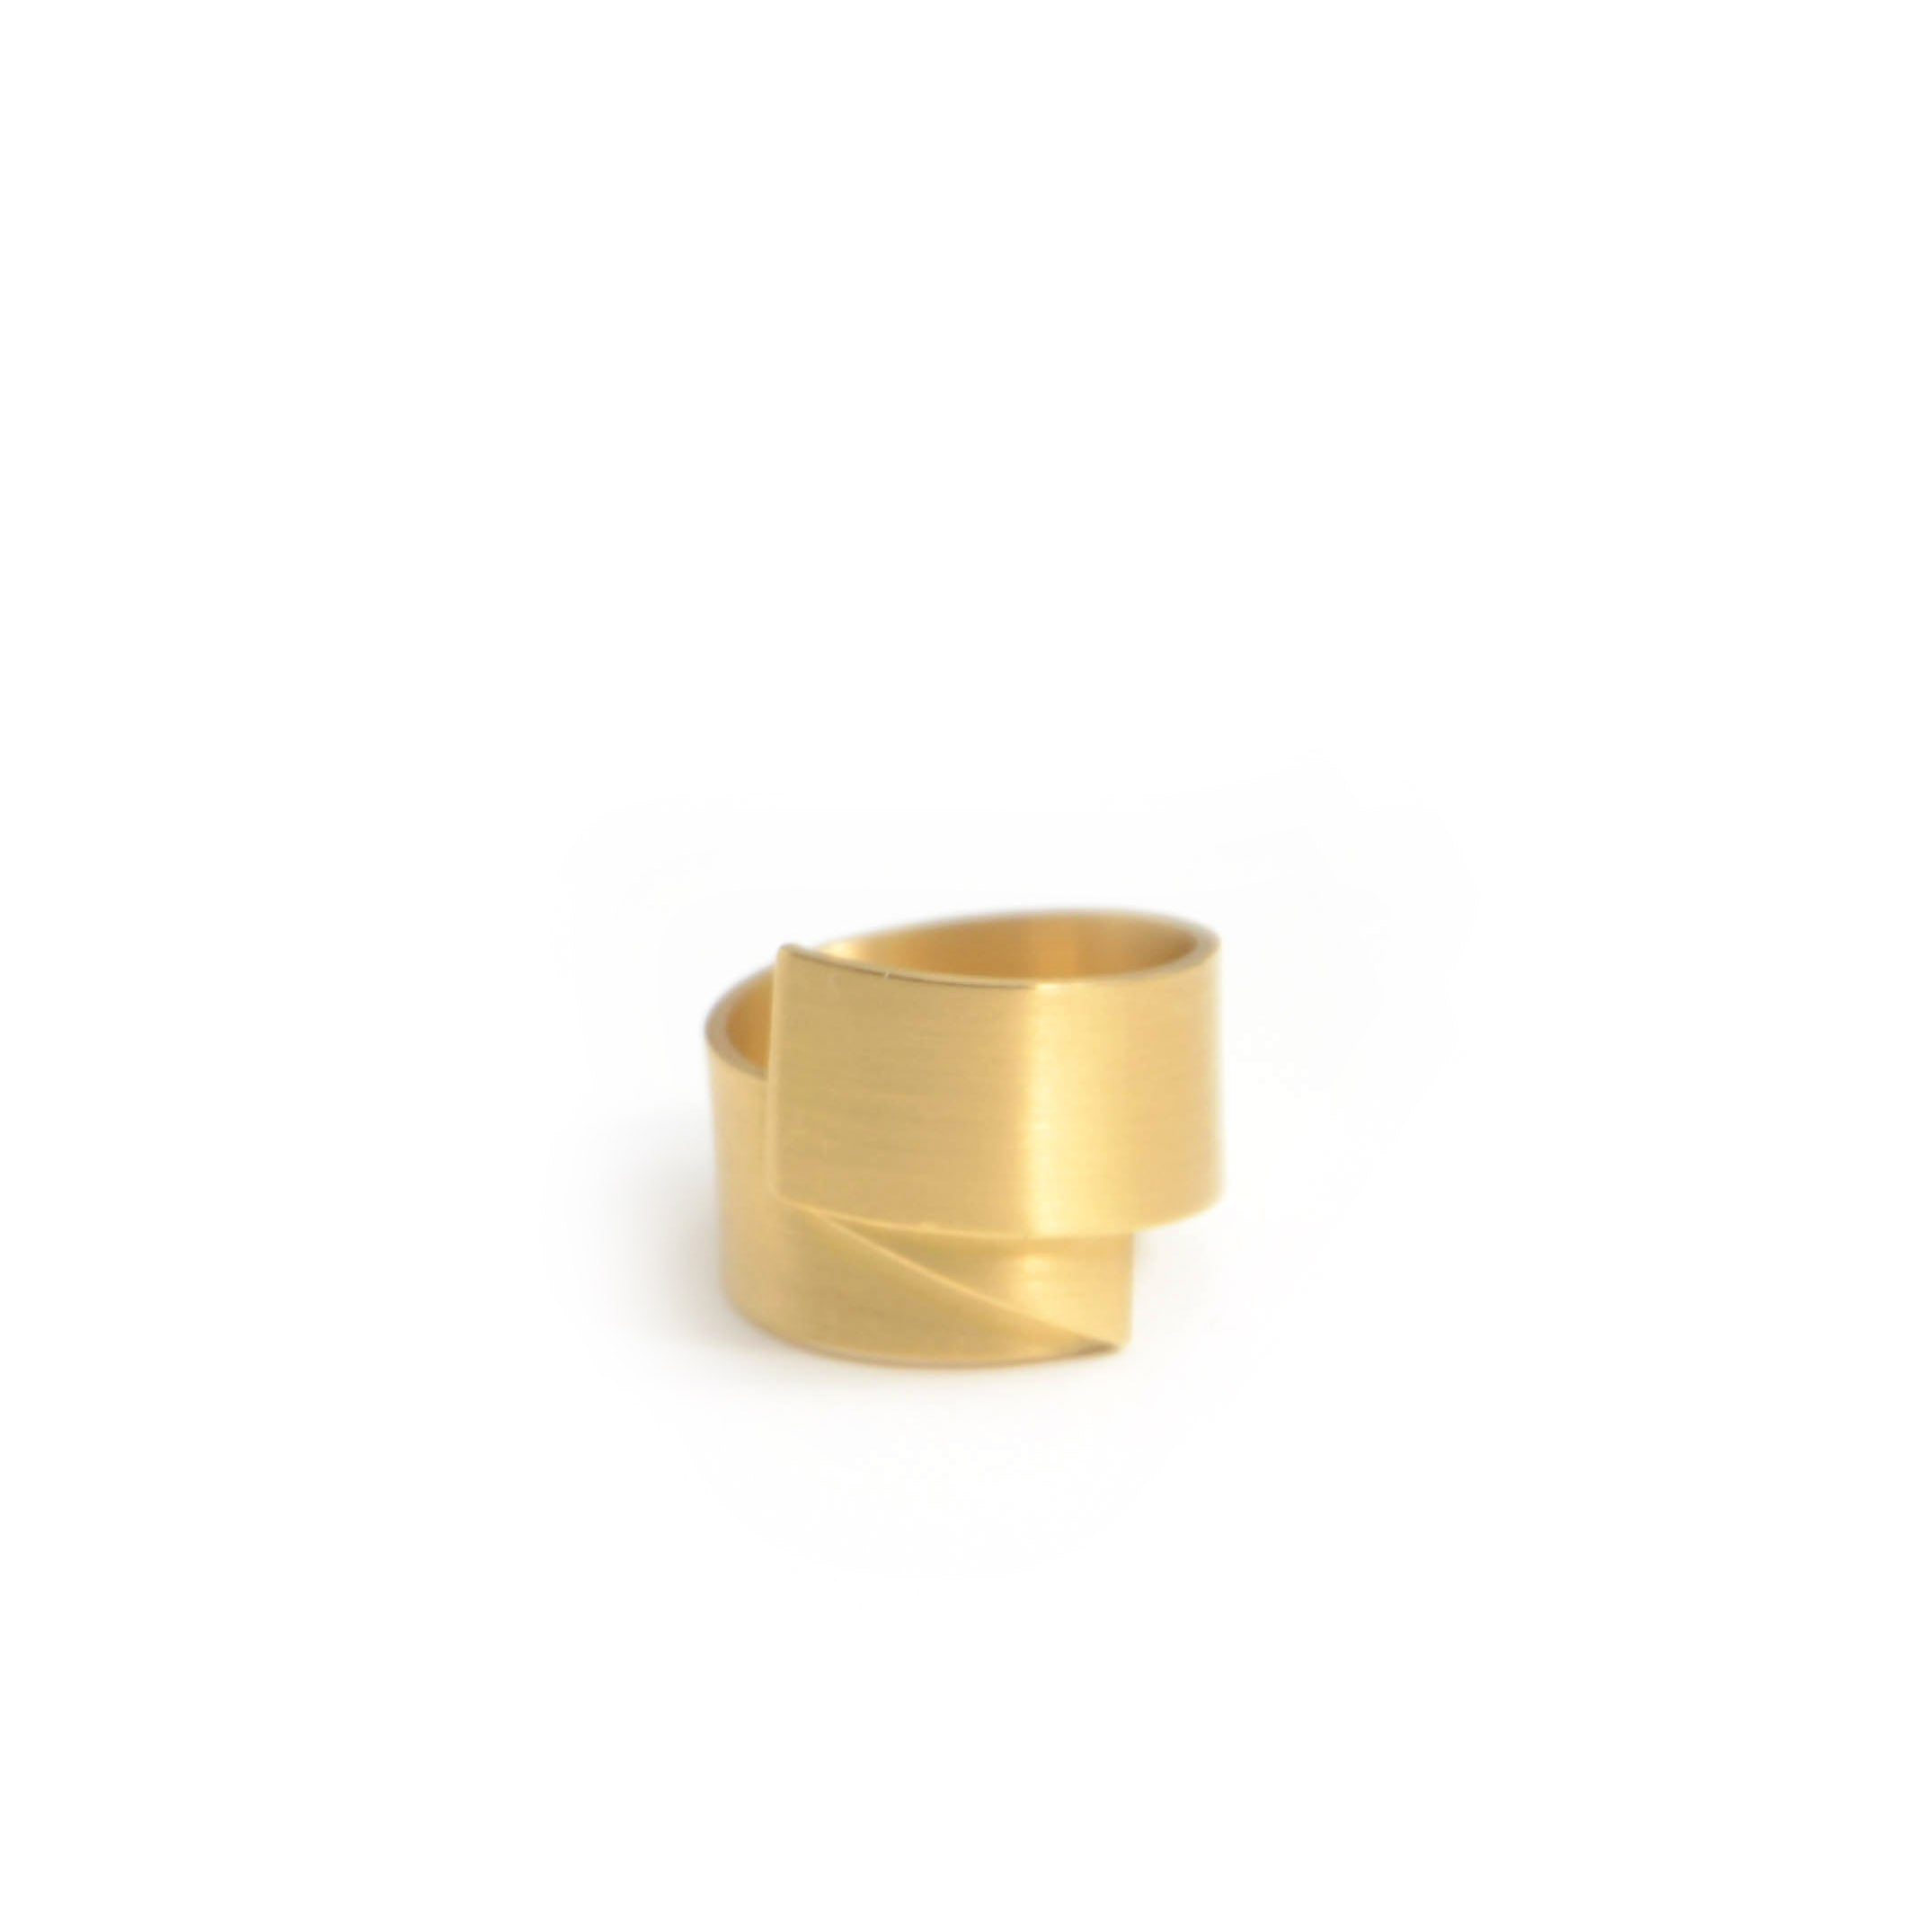 Isabelle Fa Faltung ring in 18 karat satin finish yellow gold